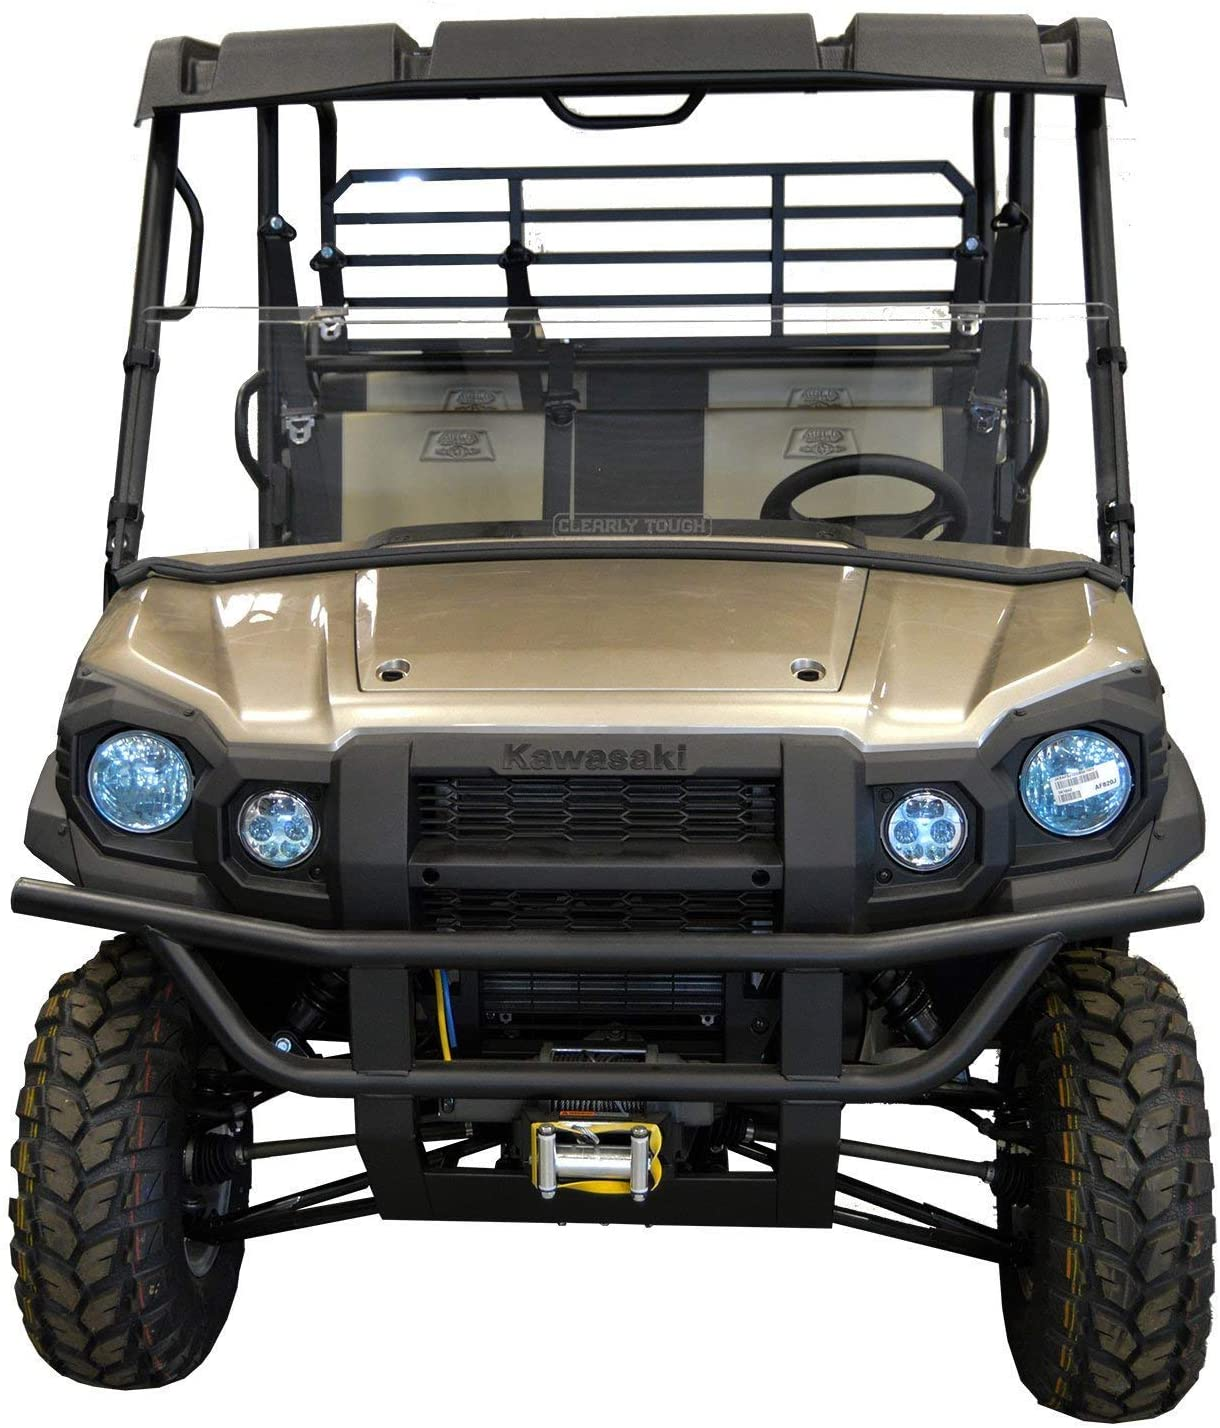 Kawasaki Mule Pro Series Windshield - Half -SCRATCH RESISTANT- The ultimate versatility for your SXS! On or off in seconds. Premium poly w/Hard Coat. Made in America!